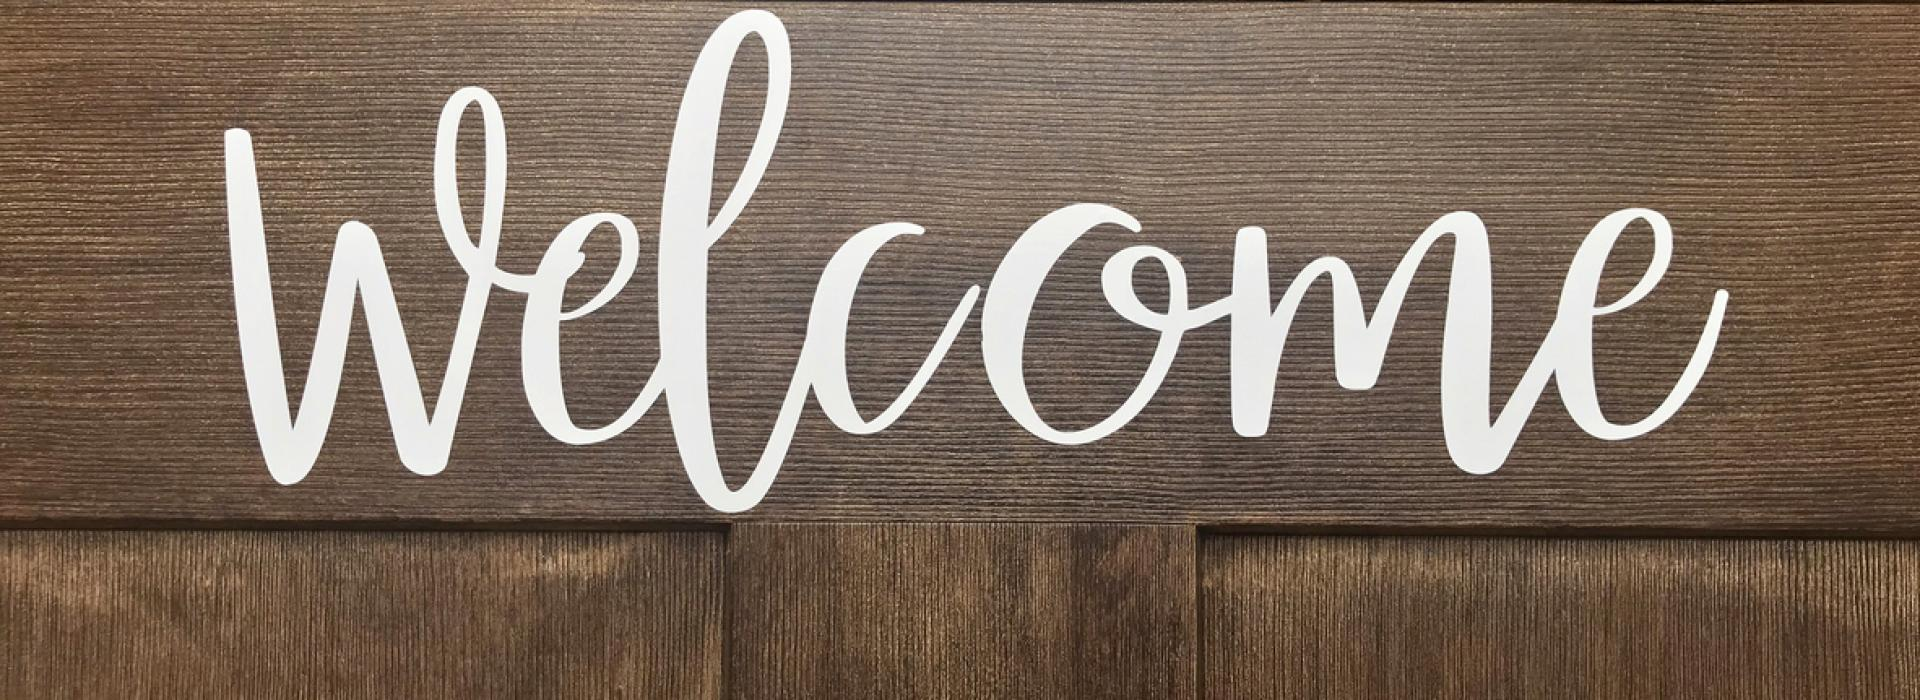 'Welcome' is written in friendly cursive letter. The white letters stand out against a Craftsman-style entry door.